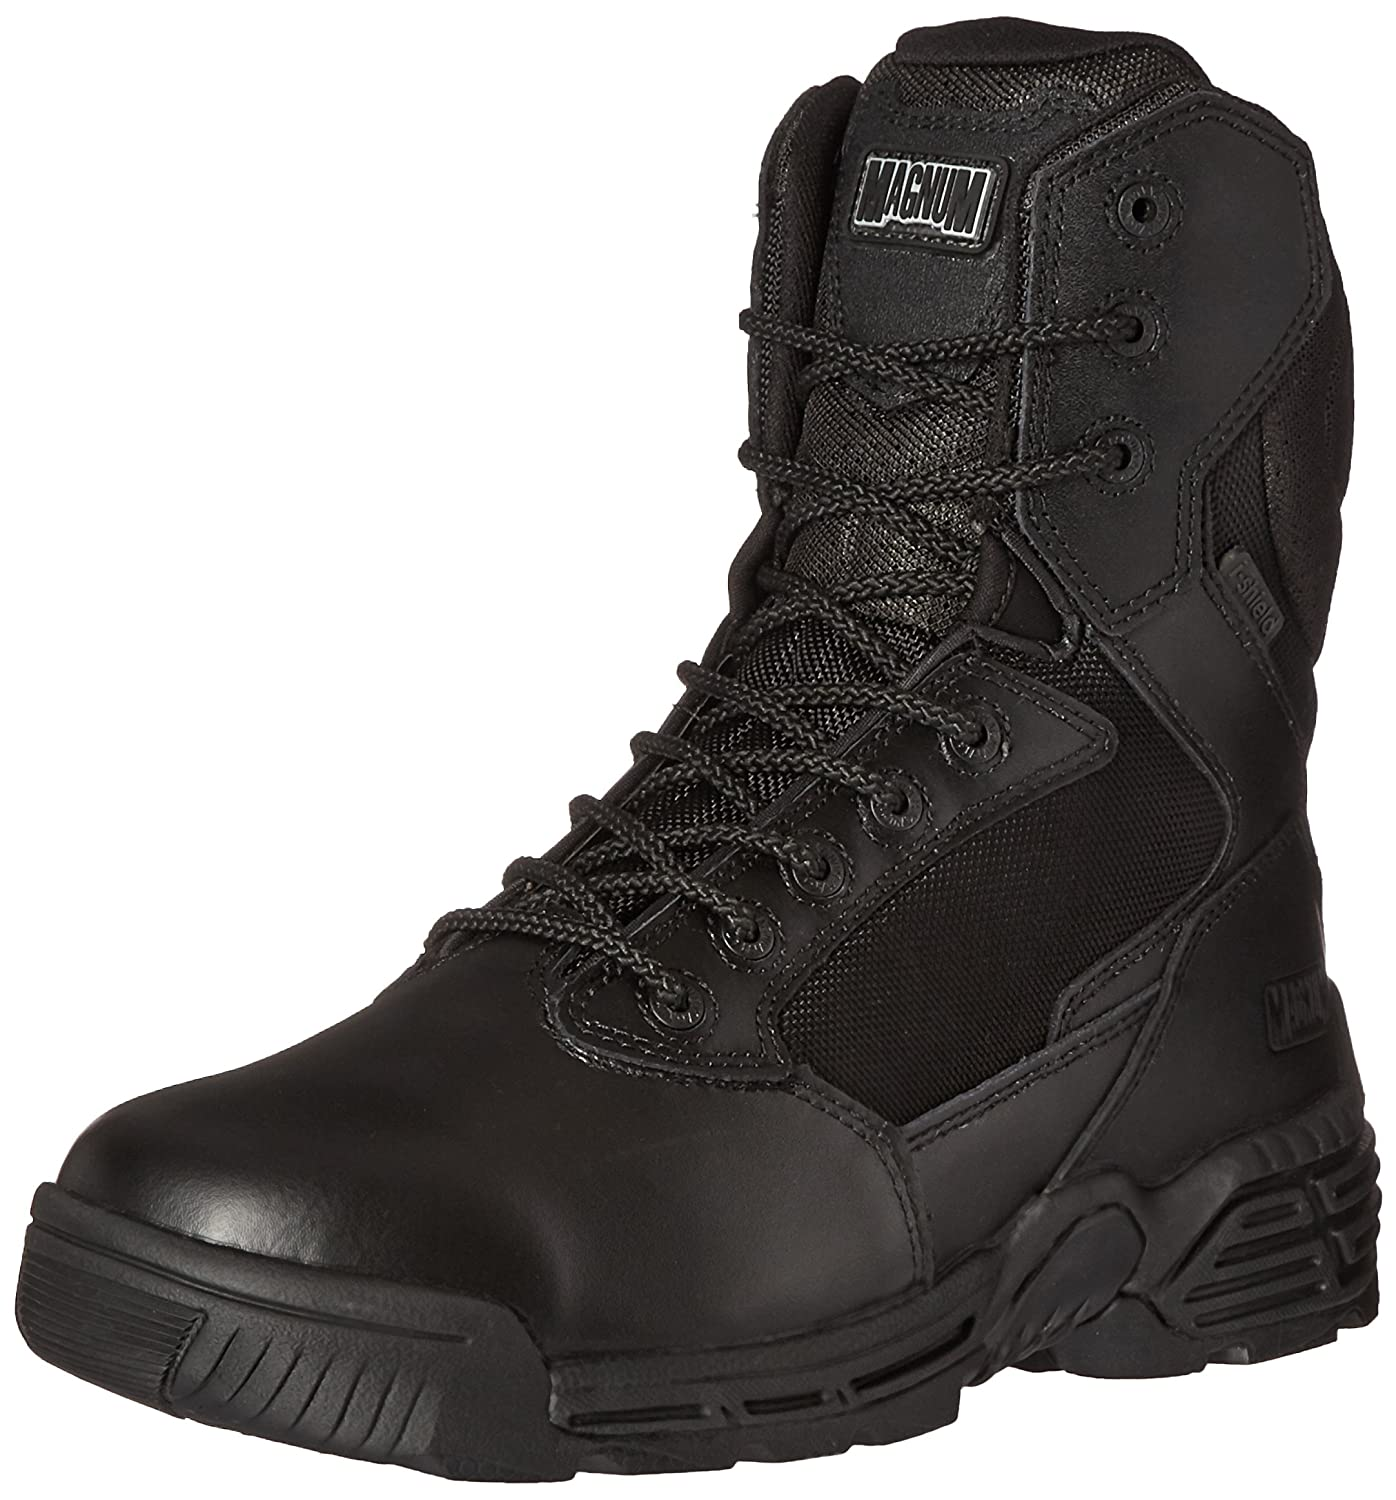 MAGNUMメンズStealth Force 8.0 Side Zip防水i-shield Military and Tactical Boot B003OEL33W 8.5 MED|ブラック ブラック 8.5 MED